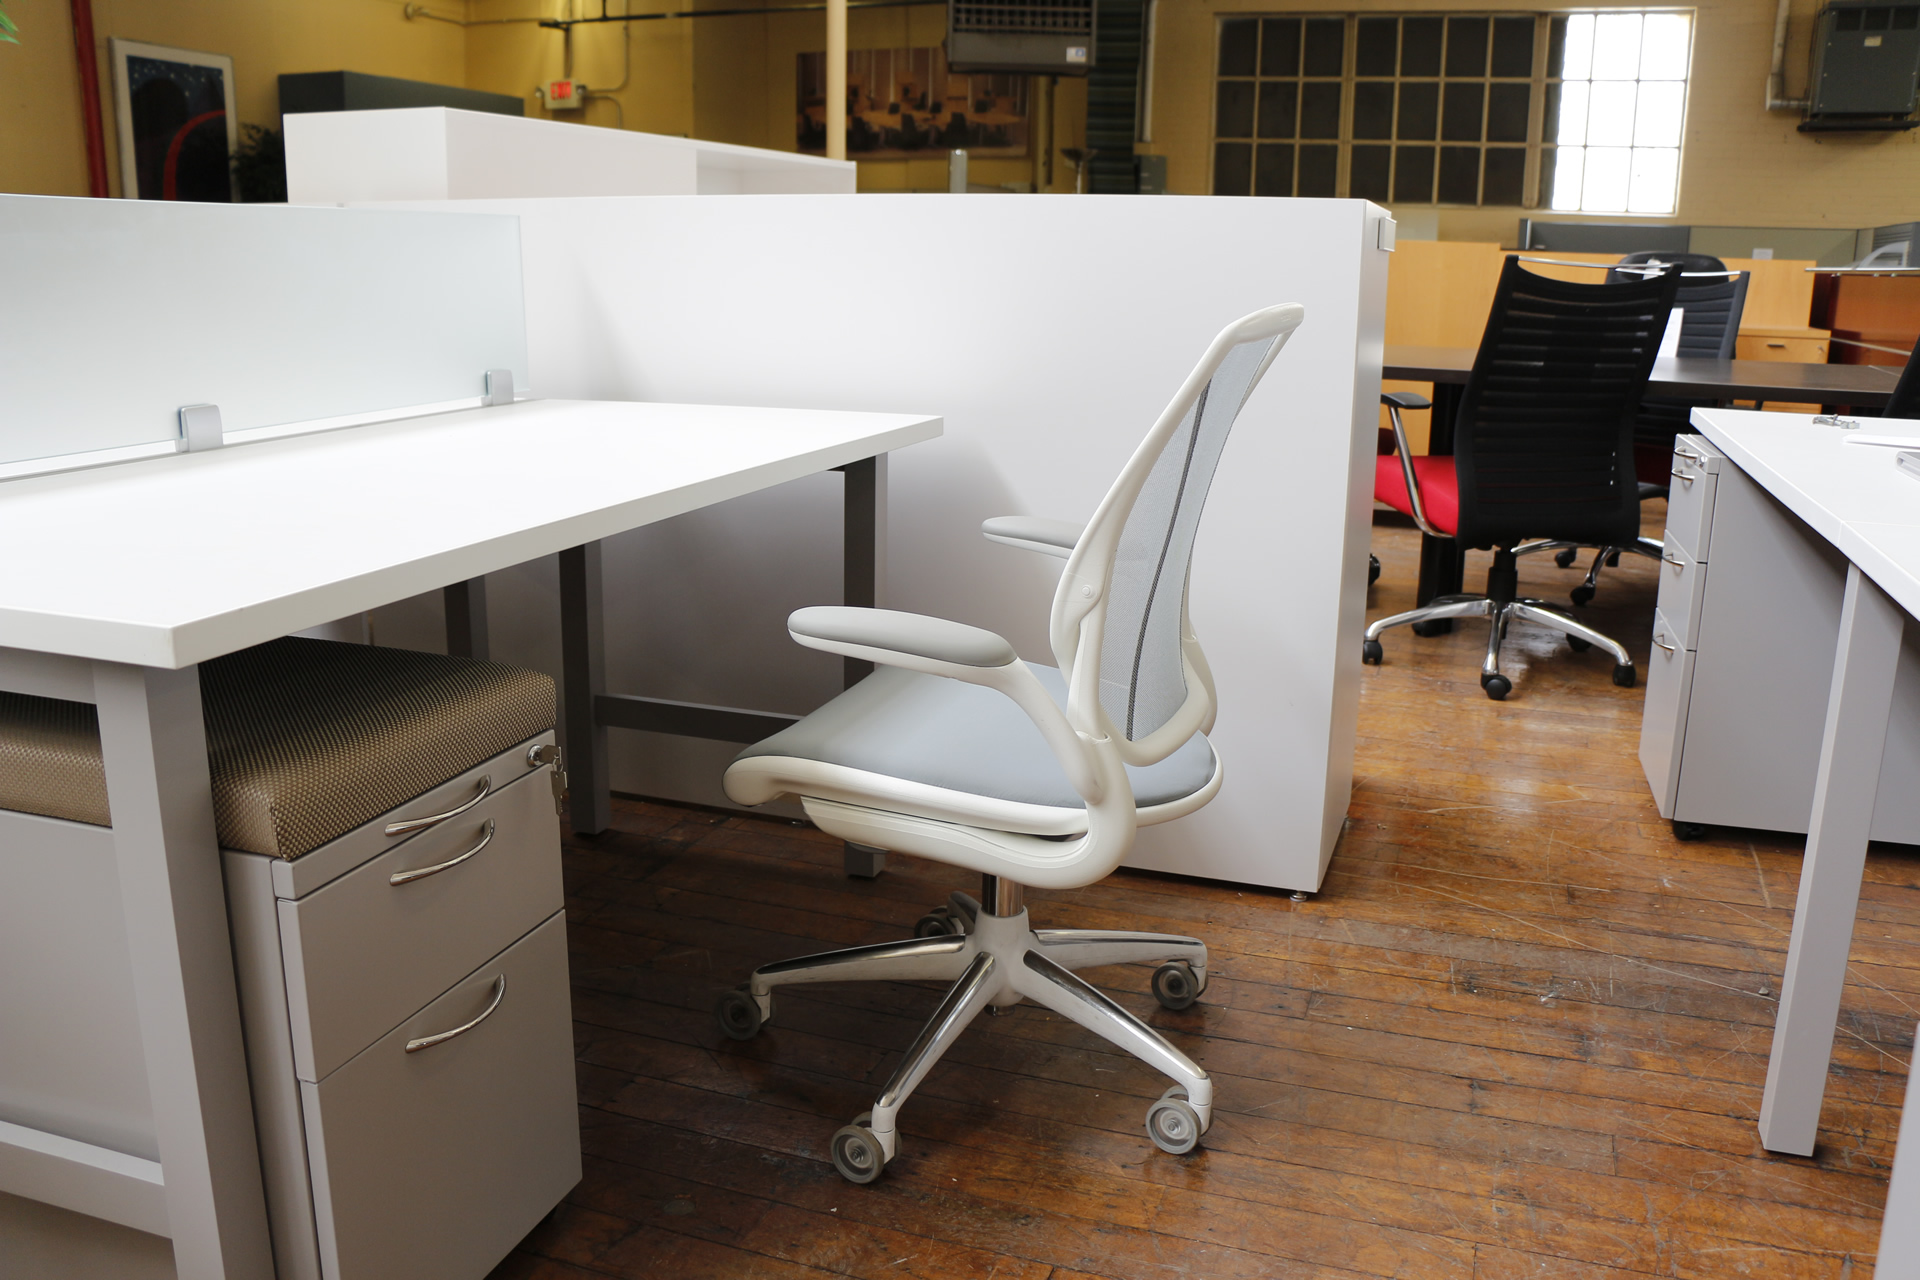 peartreeofficefurniture_peartreeofficefurniture_mg_5104.jpg